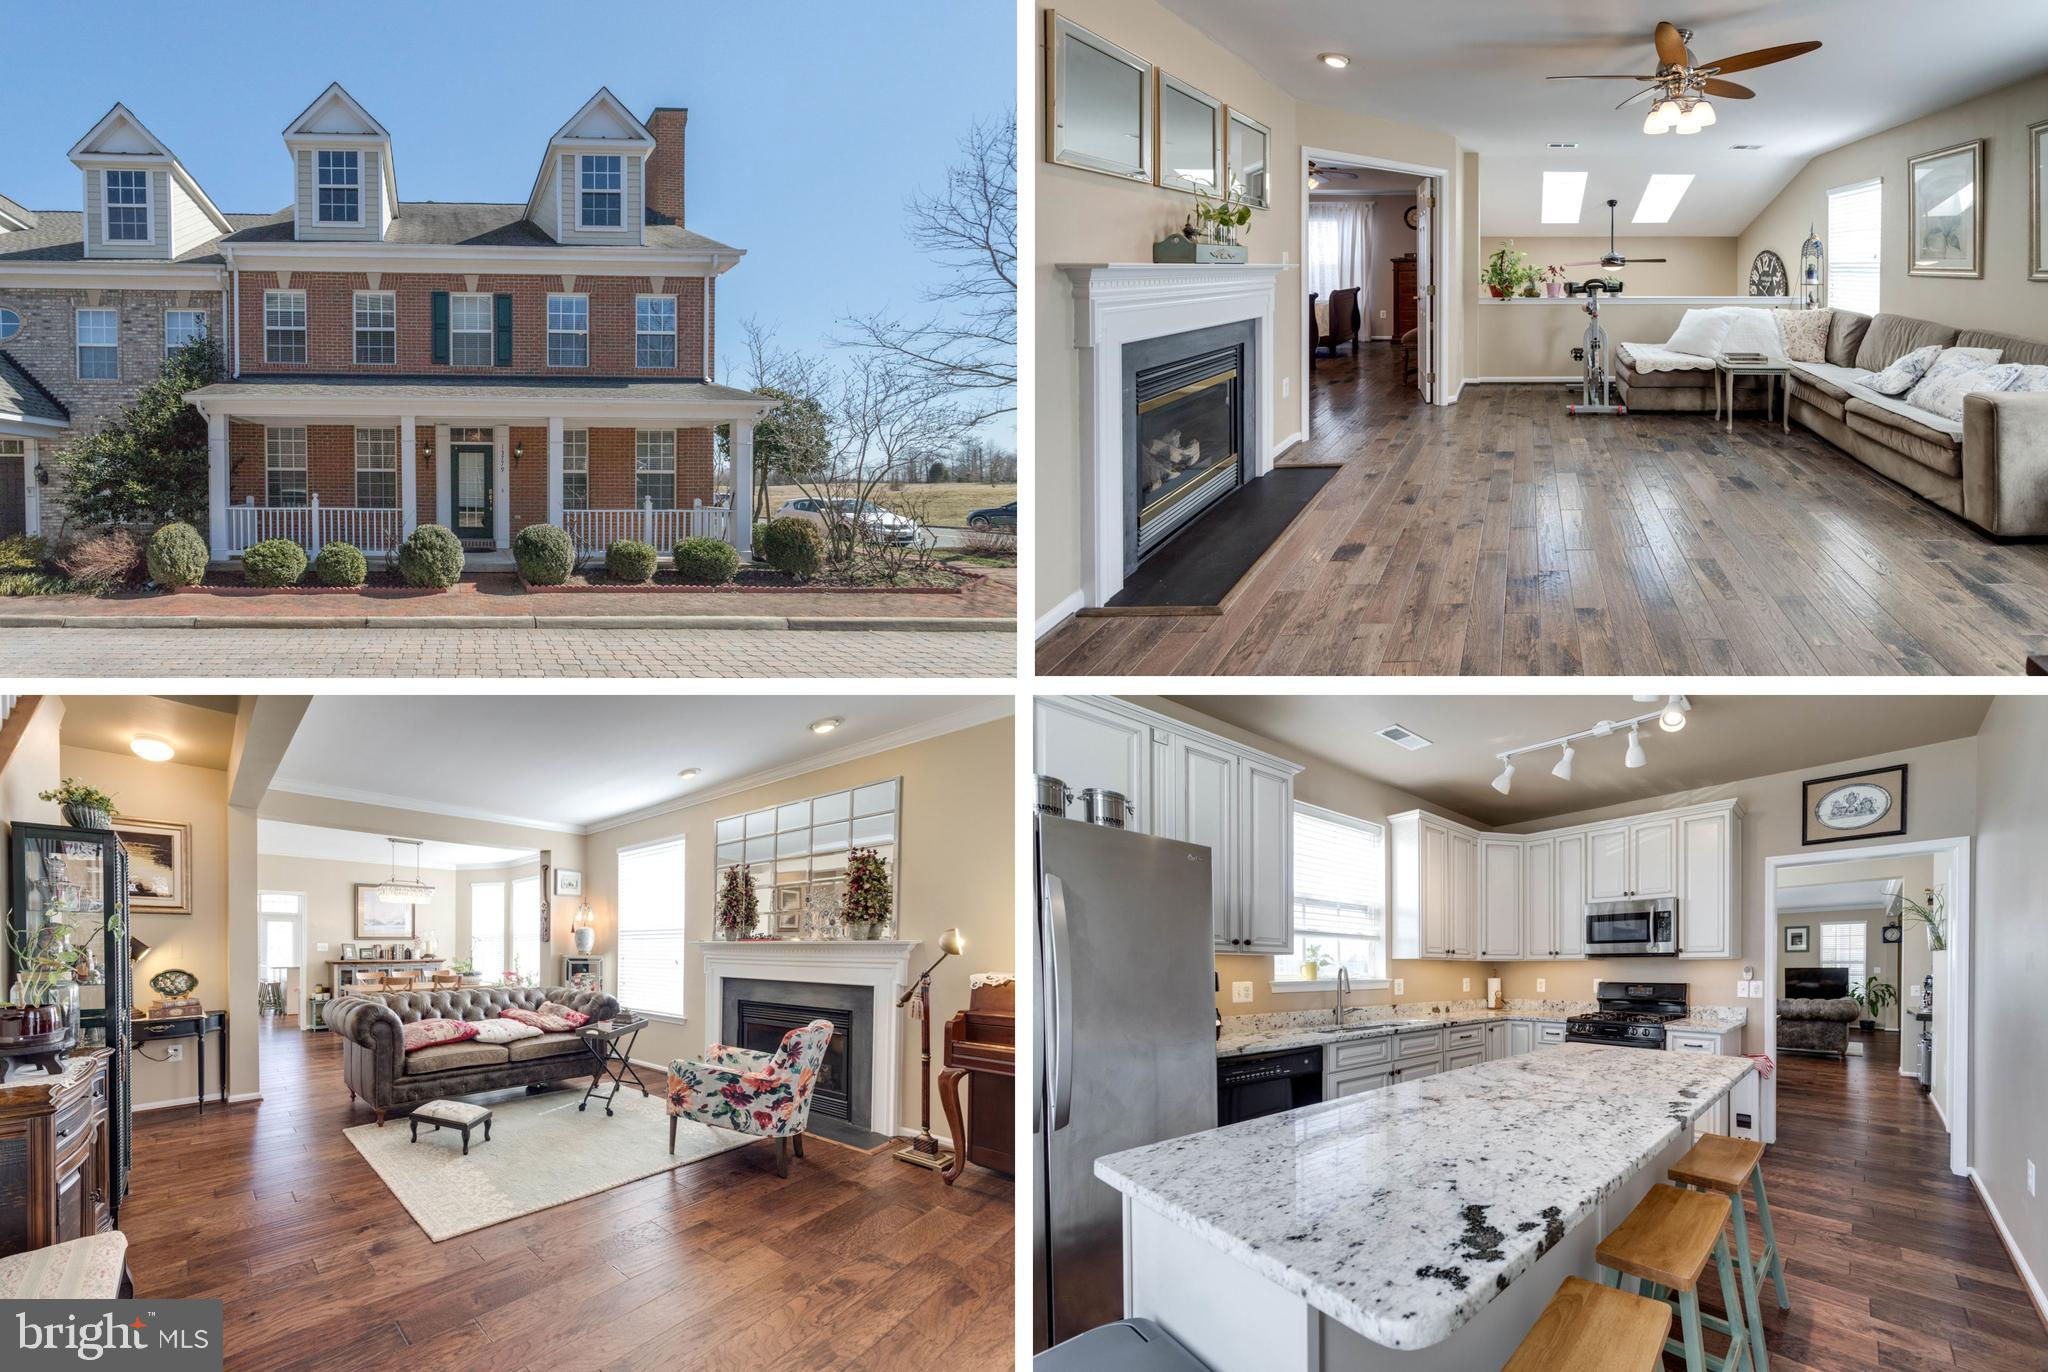 Belmont Town Center/Belmont Bay-Upscale Waterfront Community*Beautifully Remodeled Duplex w/Nice Patio*Feels Like Single Family Home*4 BRs+3.5 Baths (2 Master Suites)*1st Floor has 2nd Master BR (18x12) w/Own Lux Bath(Tub & Shower) & Walk-in Closet*Upper Level has Master BR (19x14) w/Tray Ceiling, Walk-in Closet, Luxury Bath (Tub & Shower), plus 2 more Large BRs, Family Room w/2nd Gas Fpl*6 Ceiling Fans*Skylights*Recessed Lights*ALL top of the line Wood Flooring*Remodeled Kitchen w/Granite, Large Island, Skylights, SS Appliances-walkout to Nice Patio. 2 Story Foyer*2 Car Garage and Plenty of Unassigned Parkings around the property*Truly Move-in Ready*Must See Home!